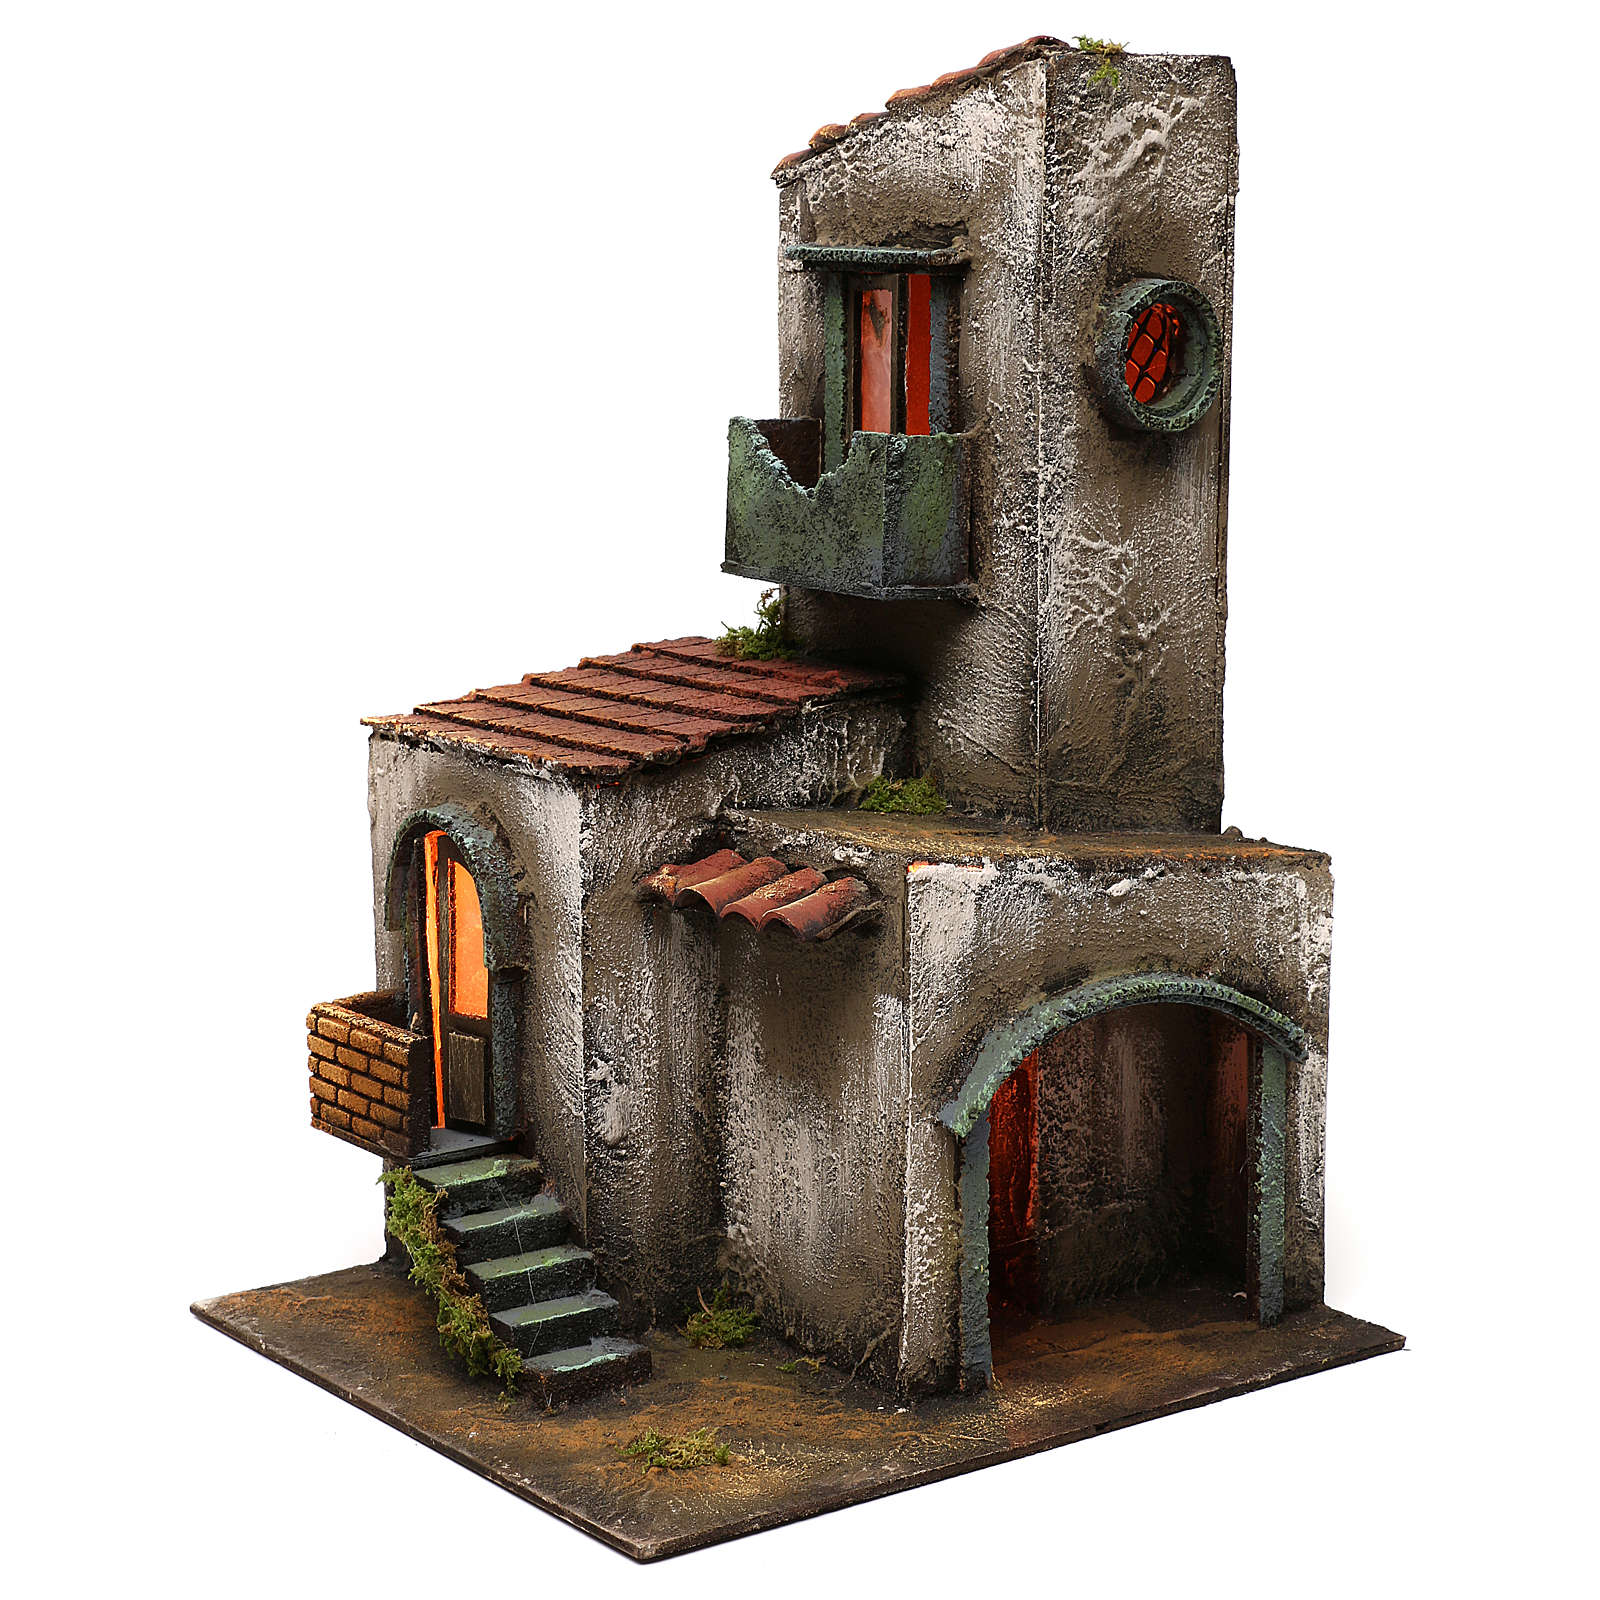 Nativity scene setting house with tower and stairs 45x30x30 cm 4